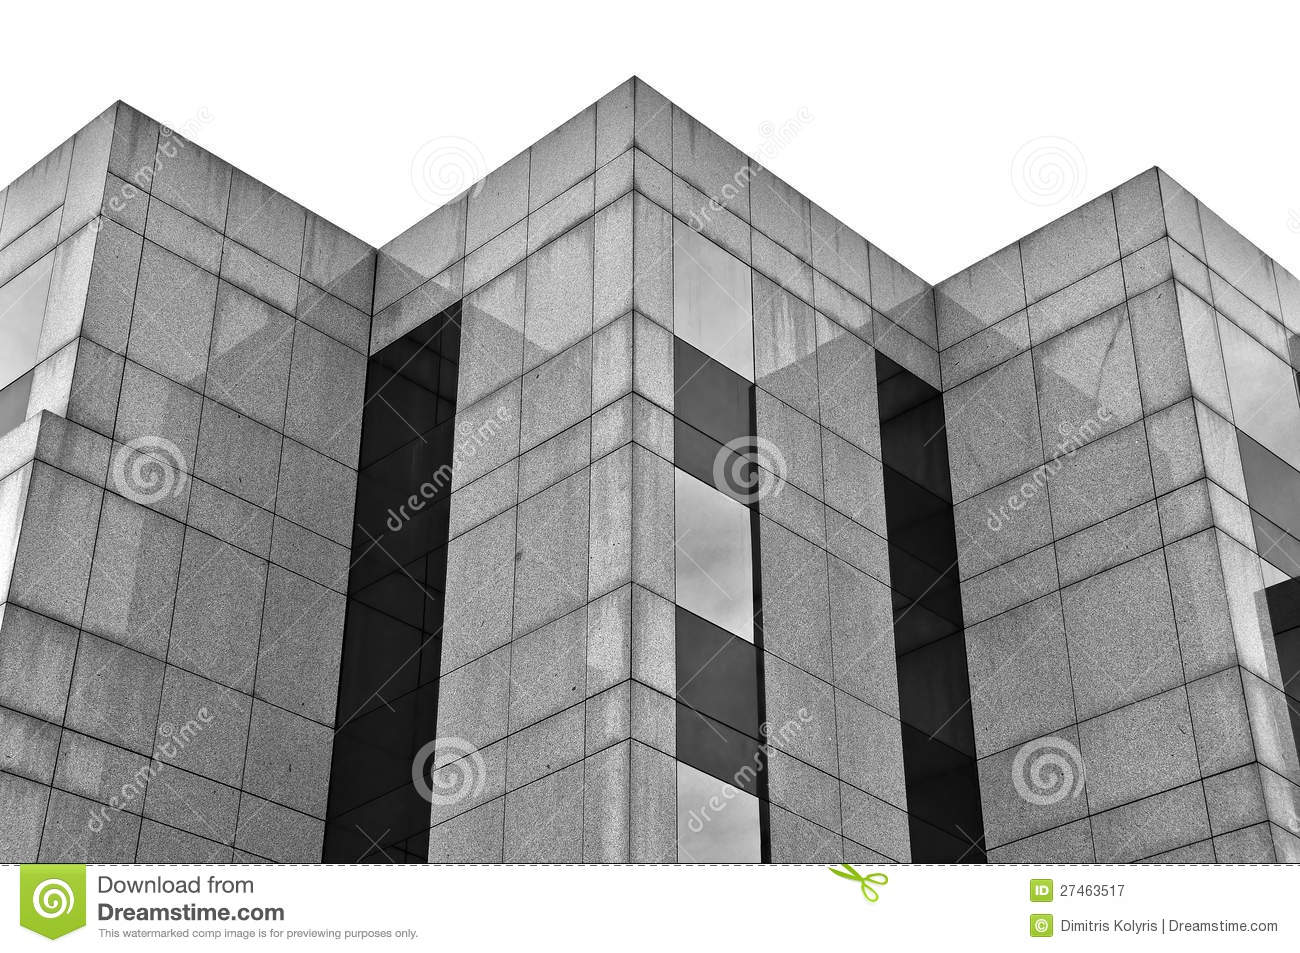 Black Marble Buildings : Building marble and glass facade stock image